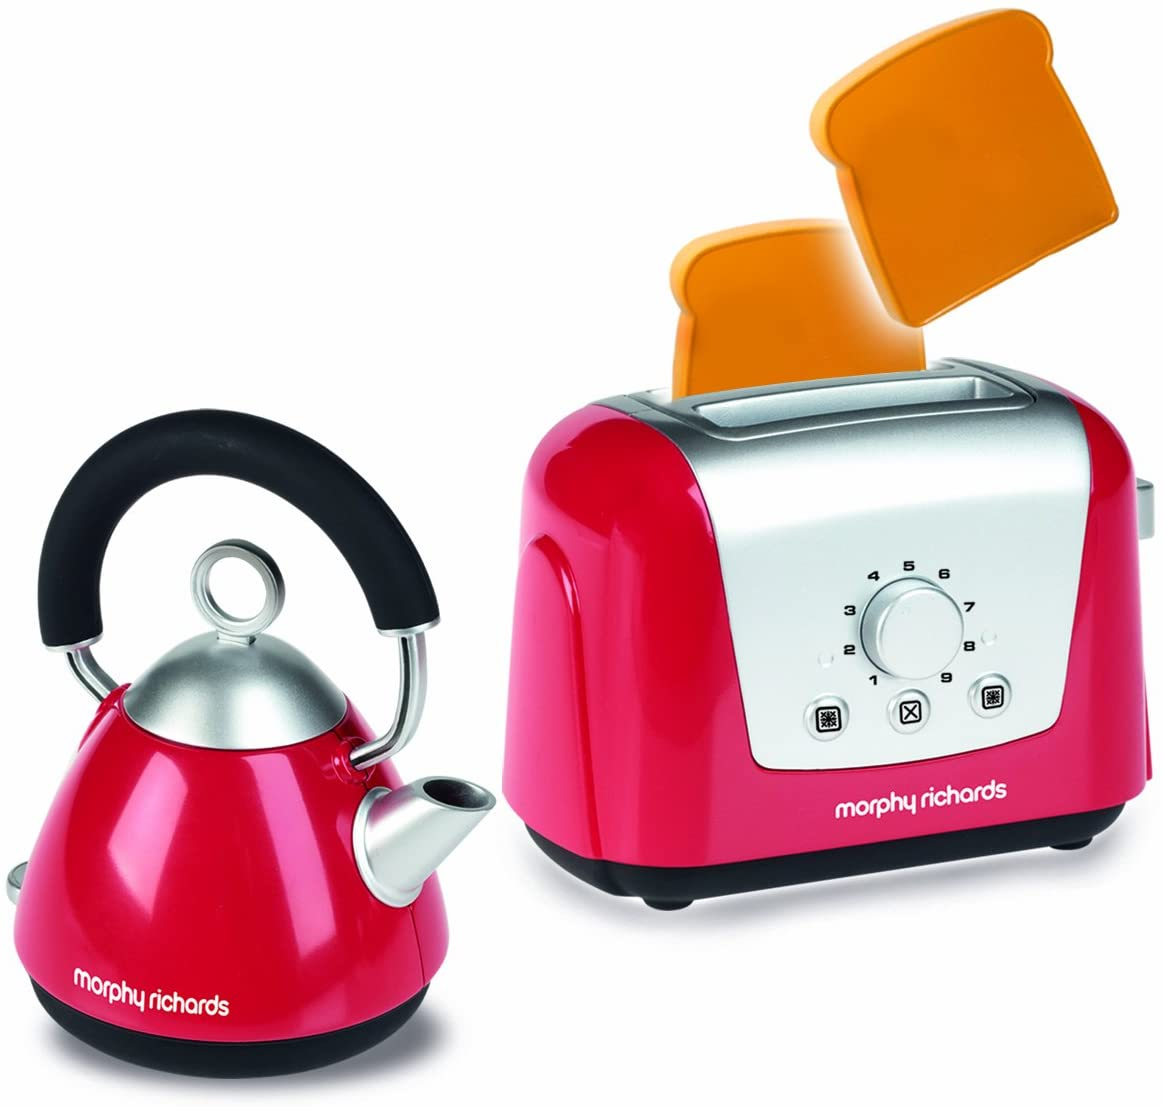 CASDON Little Cook Morphy Richards Toaster and Kettle Set